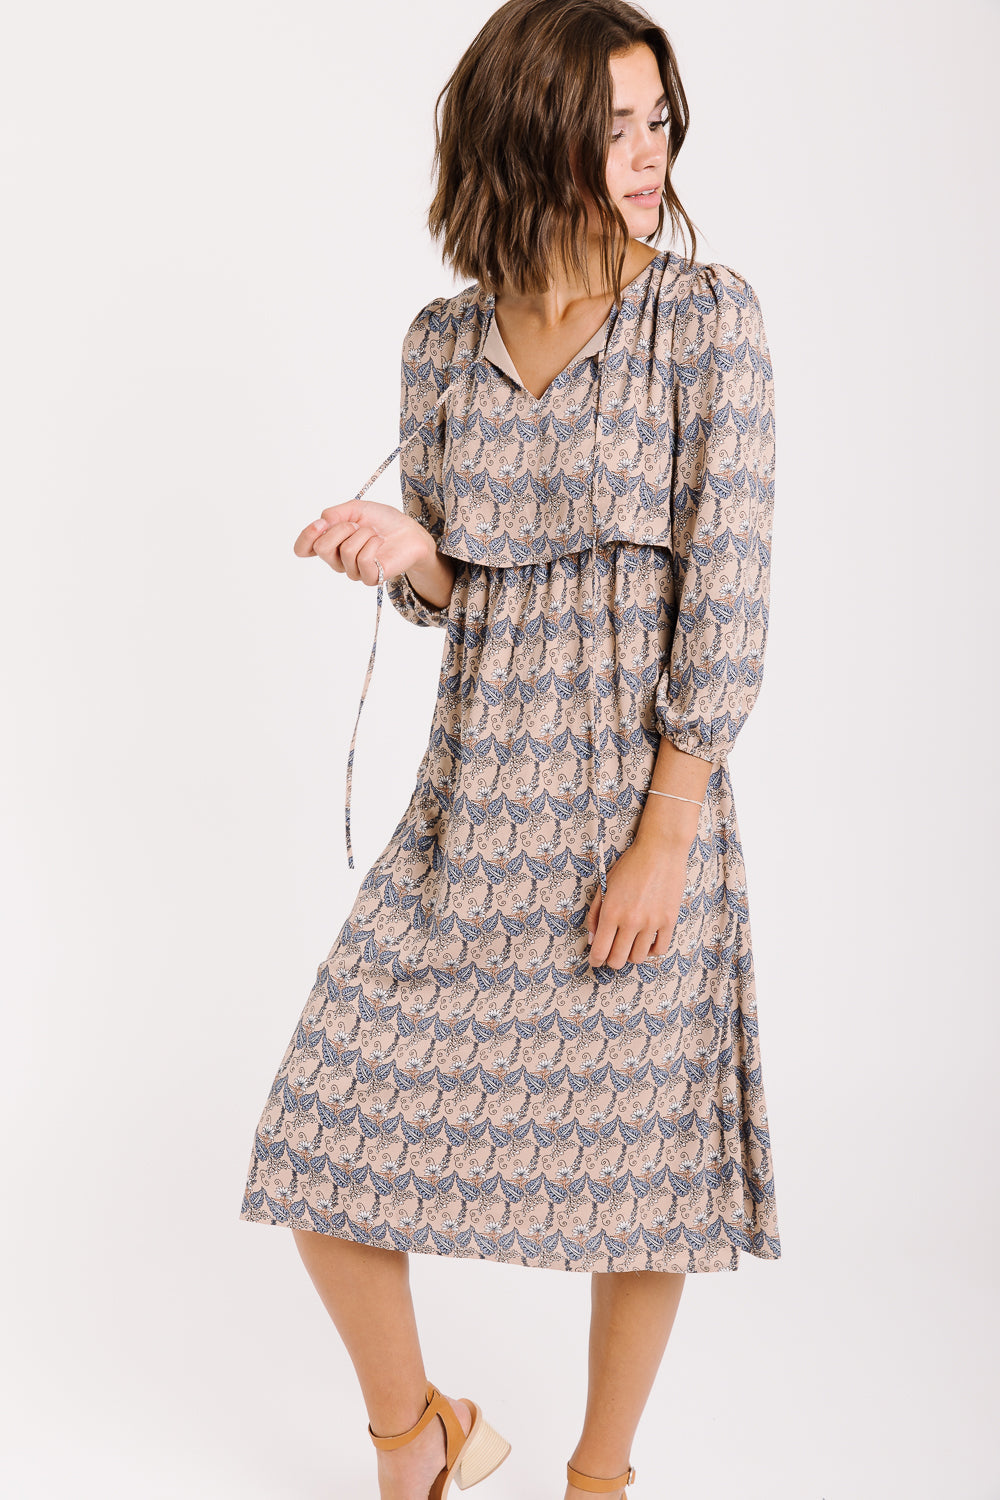 Piper & Scoot: The Village Paisley Bib Dress in Taupe